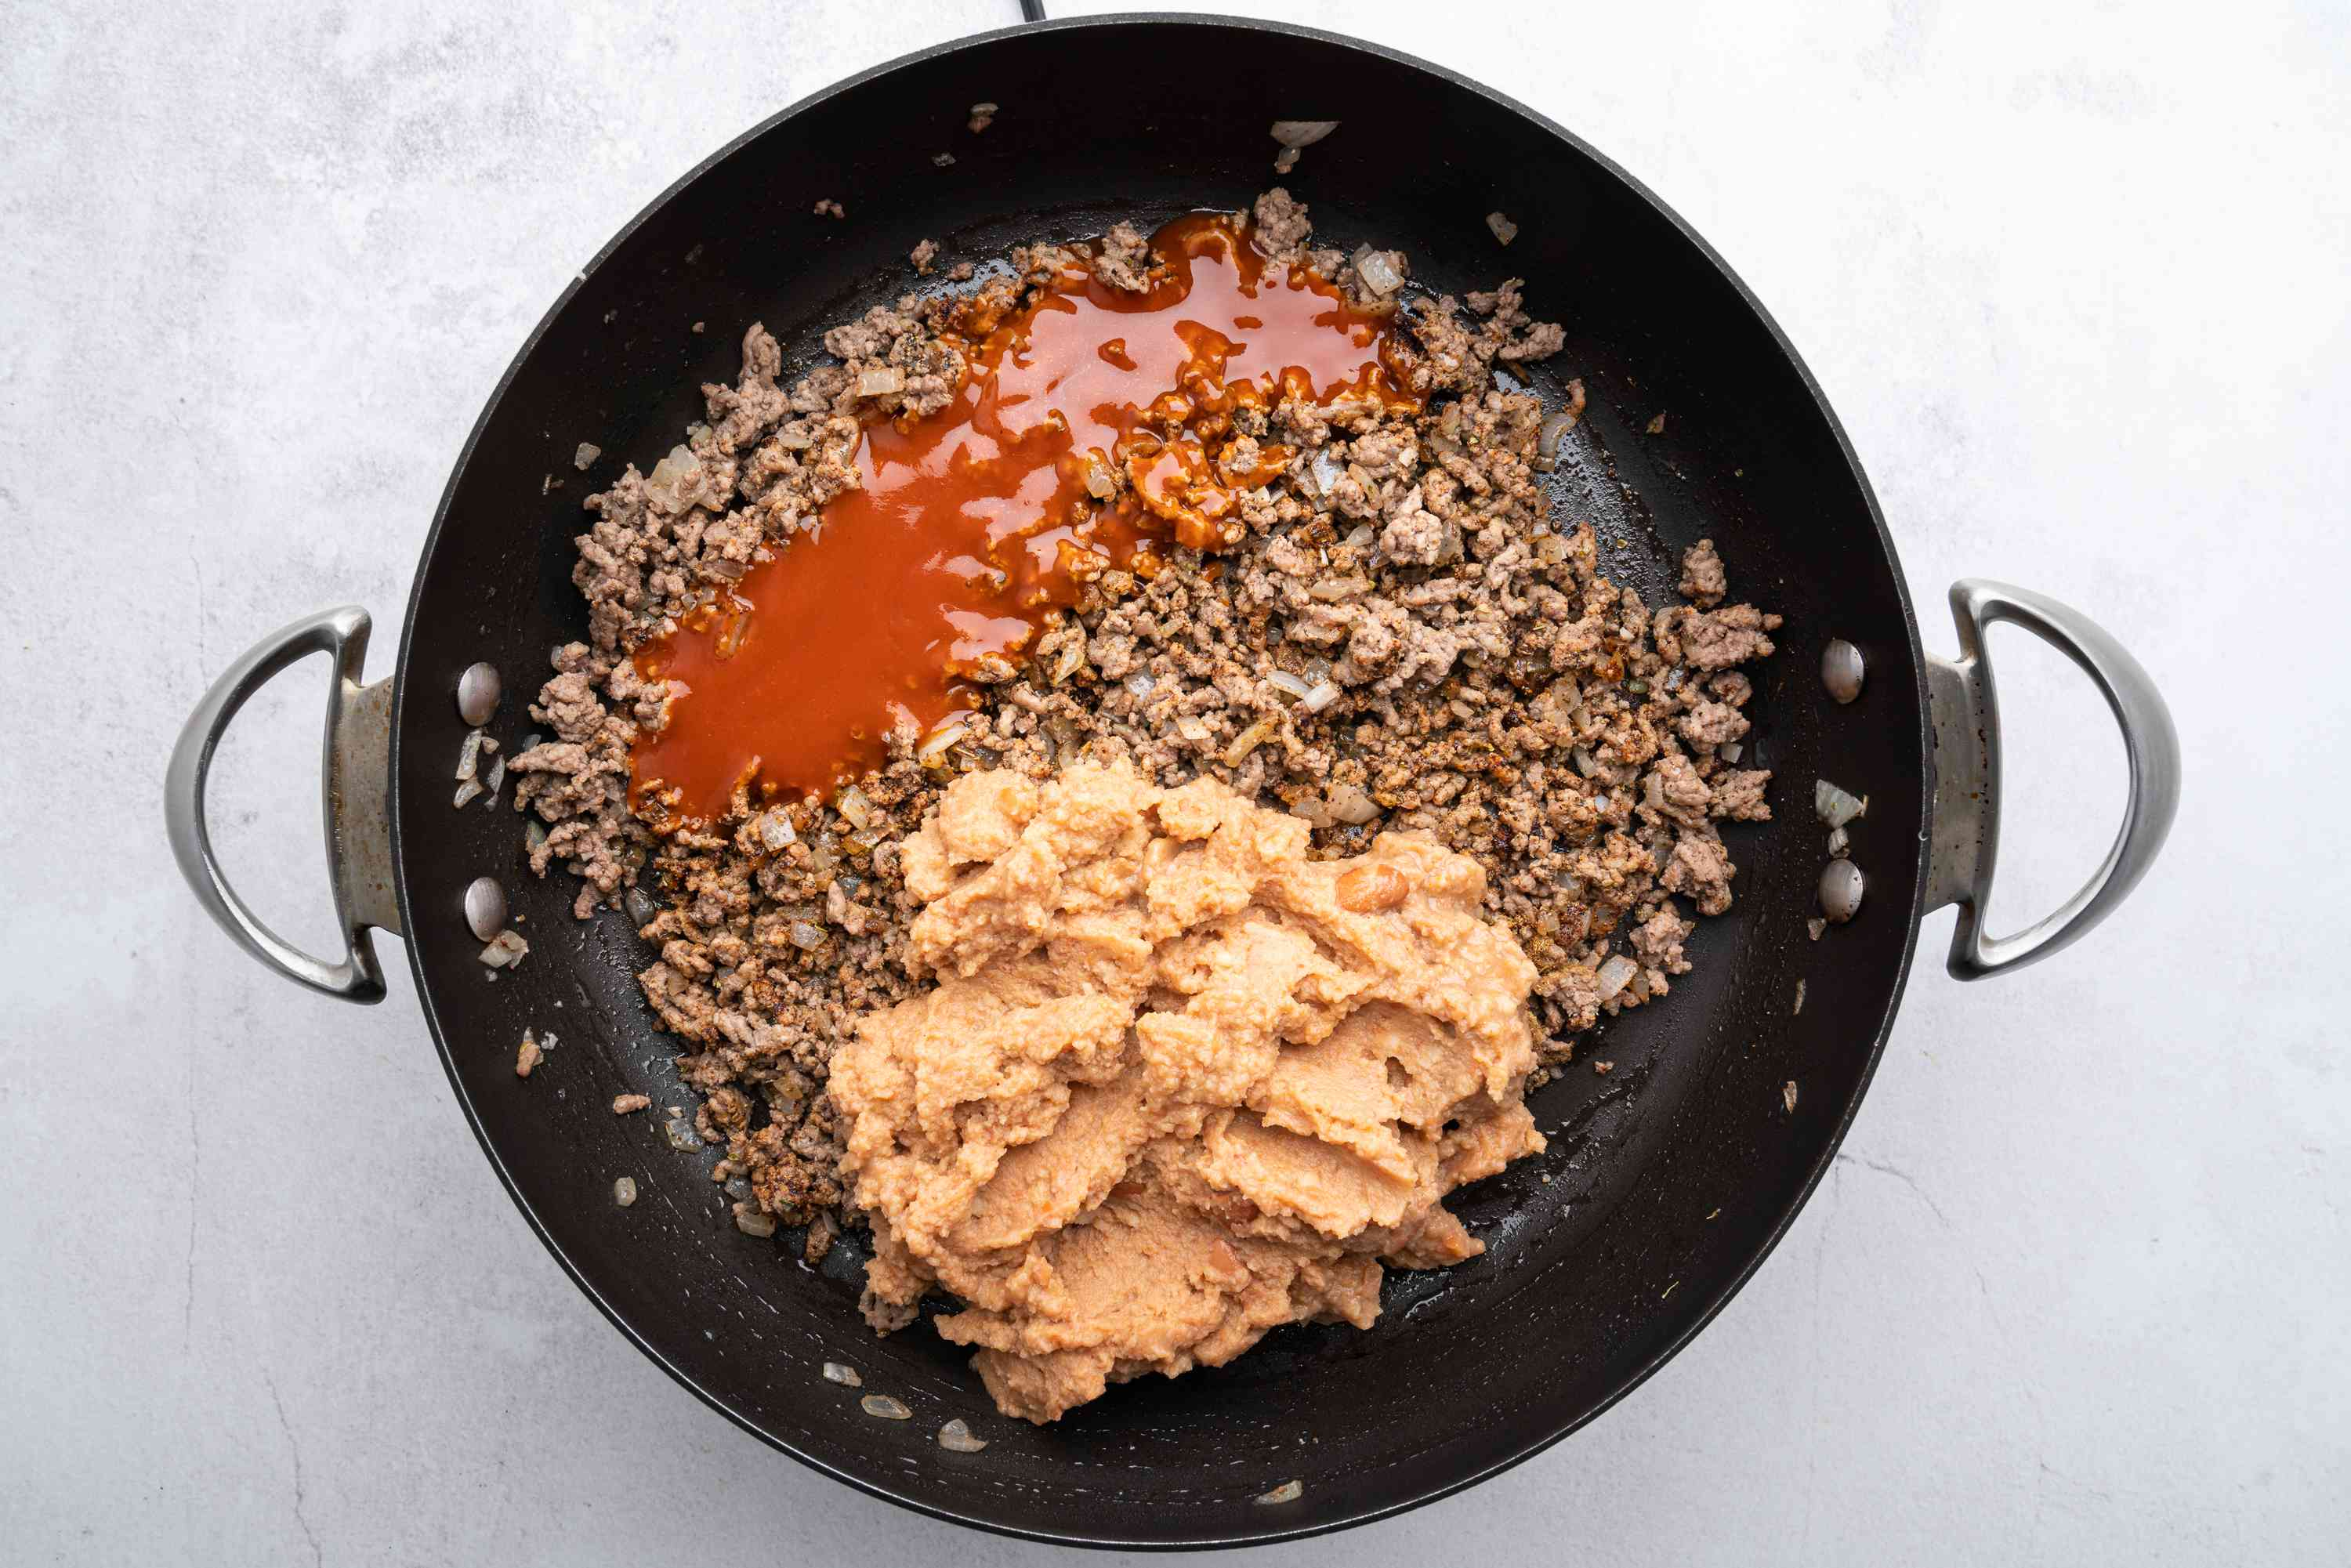 refried beans and enchilada sauce with the beef mixture in the skillet